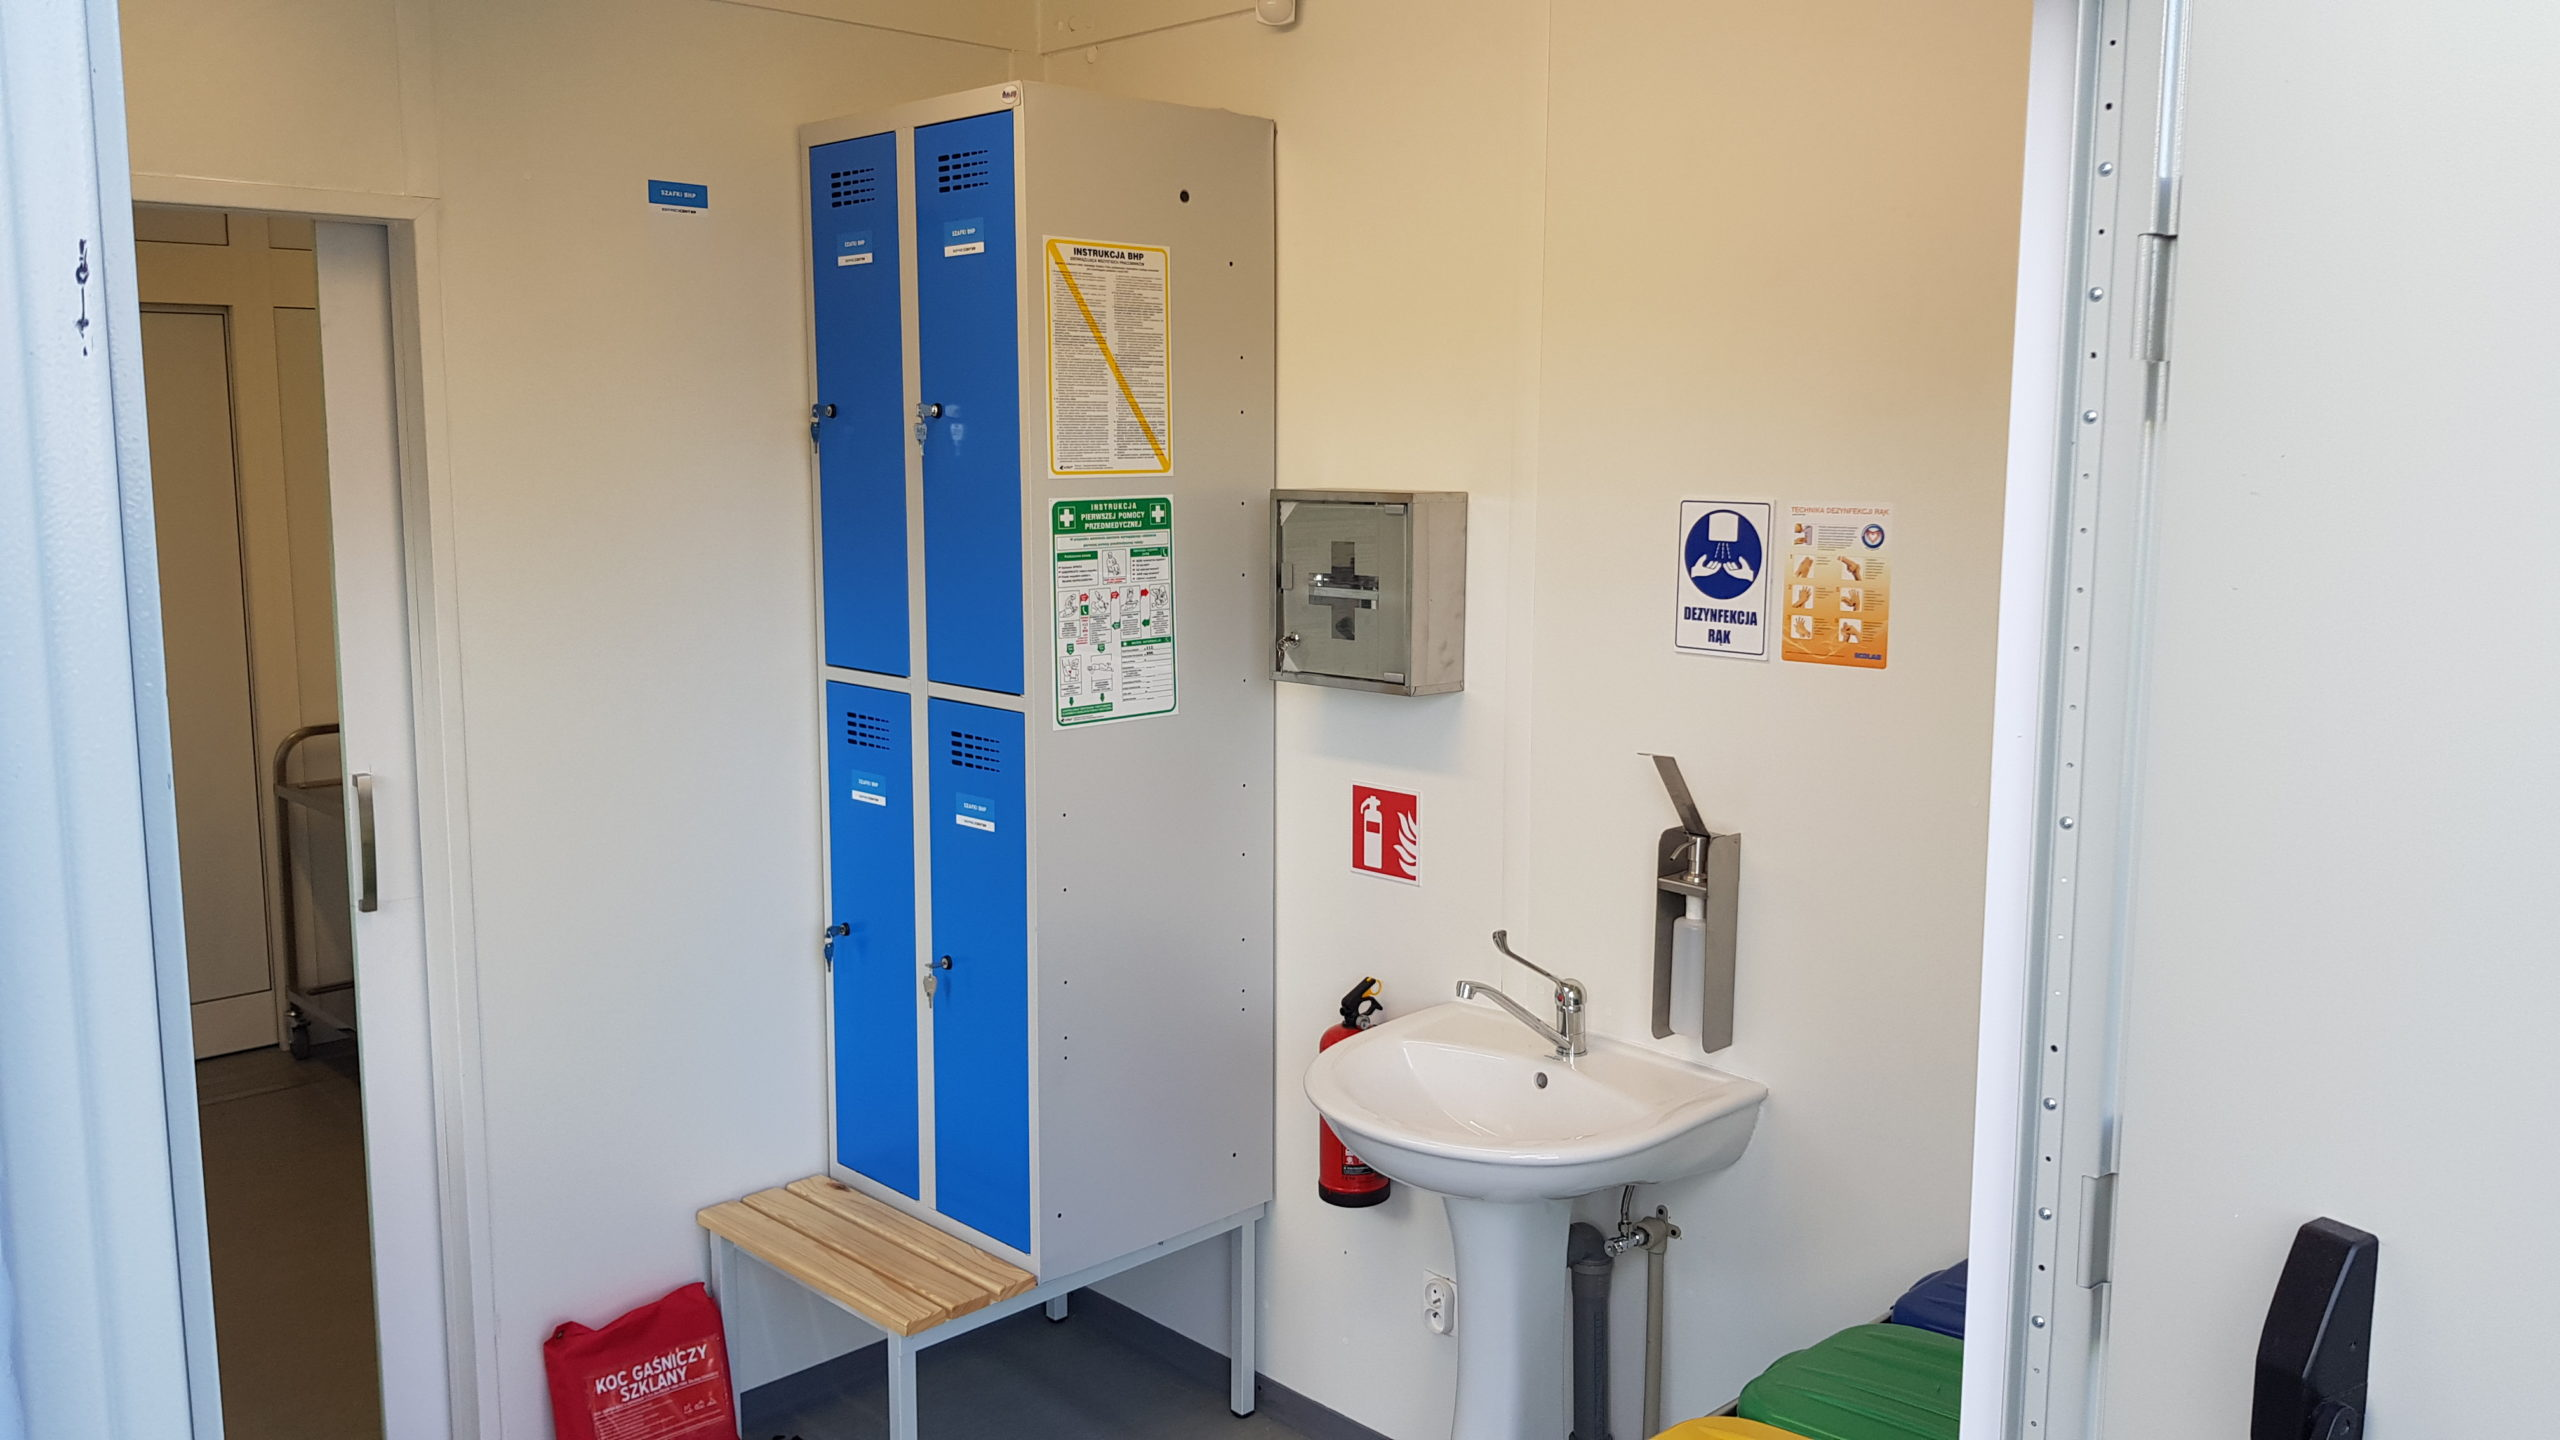 Cloakroom for medical staff